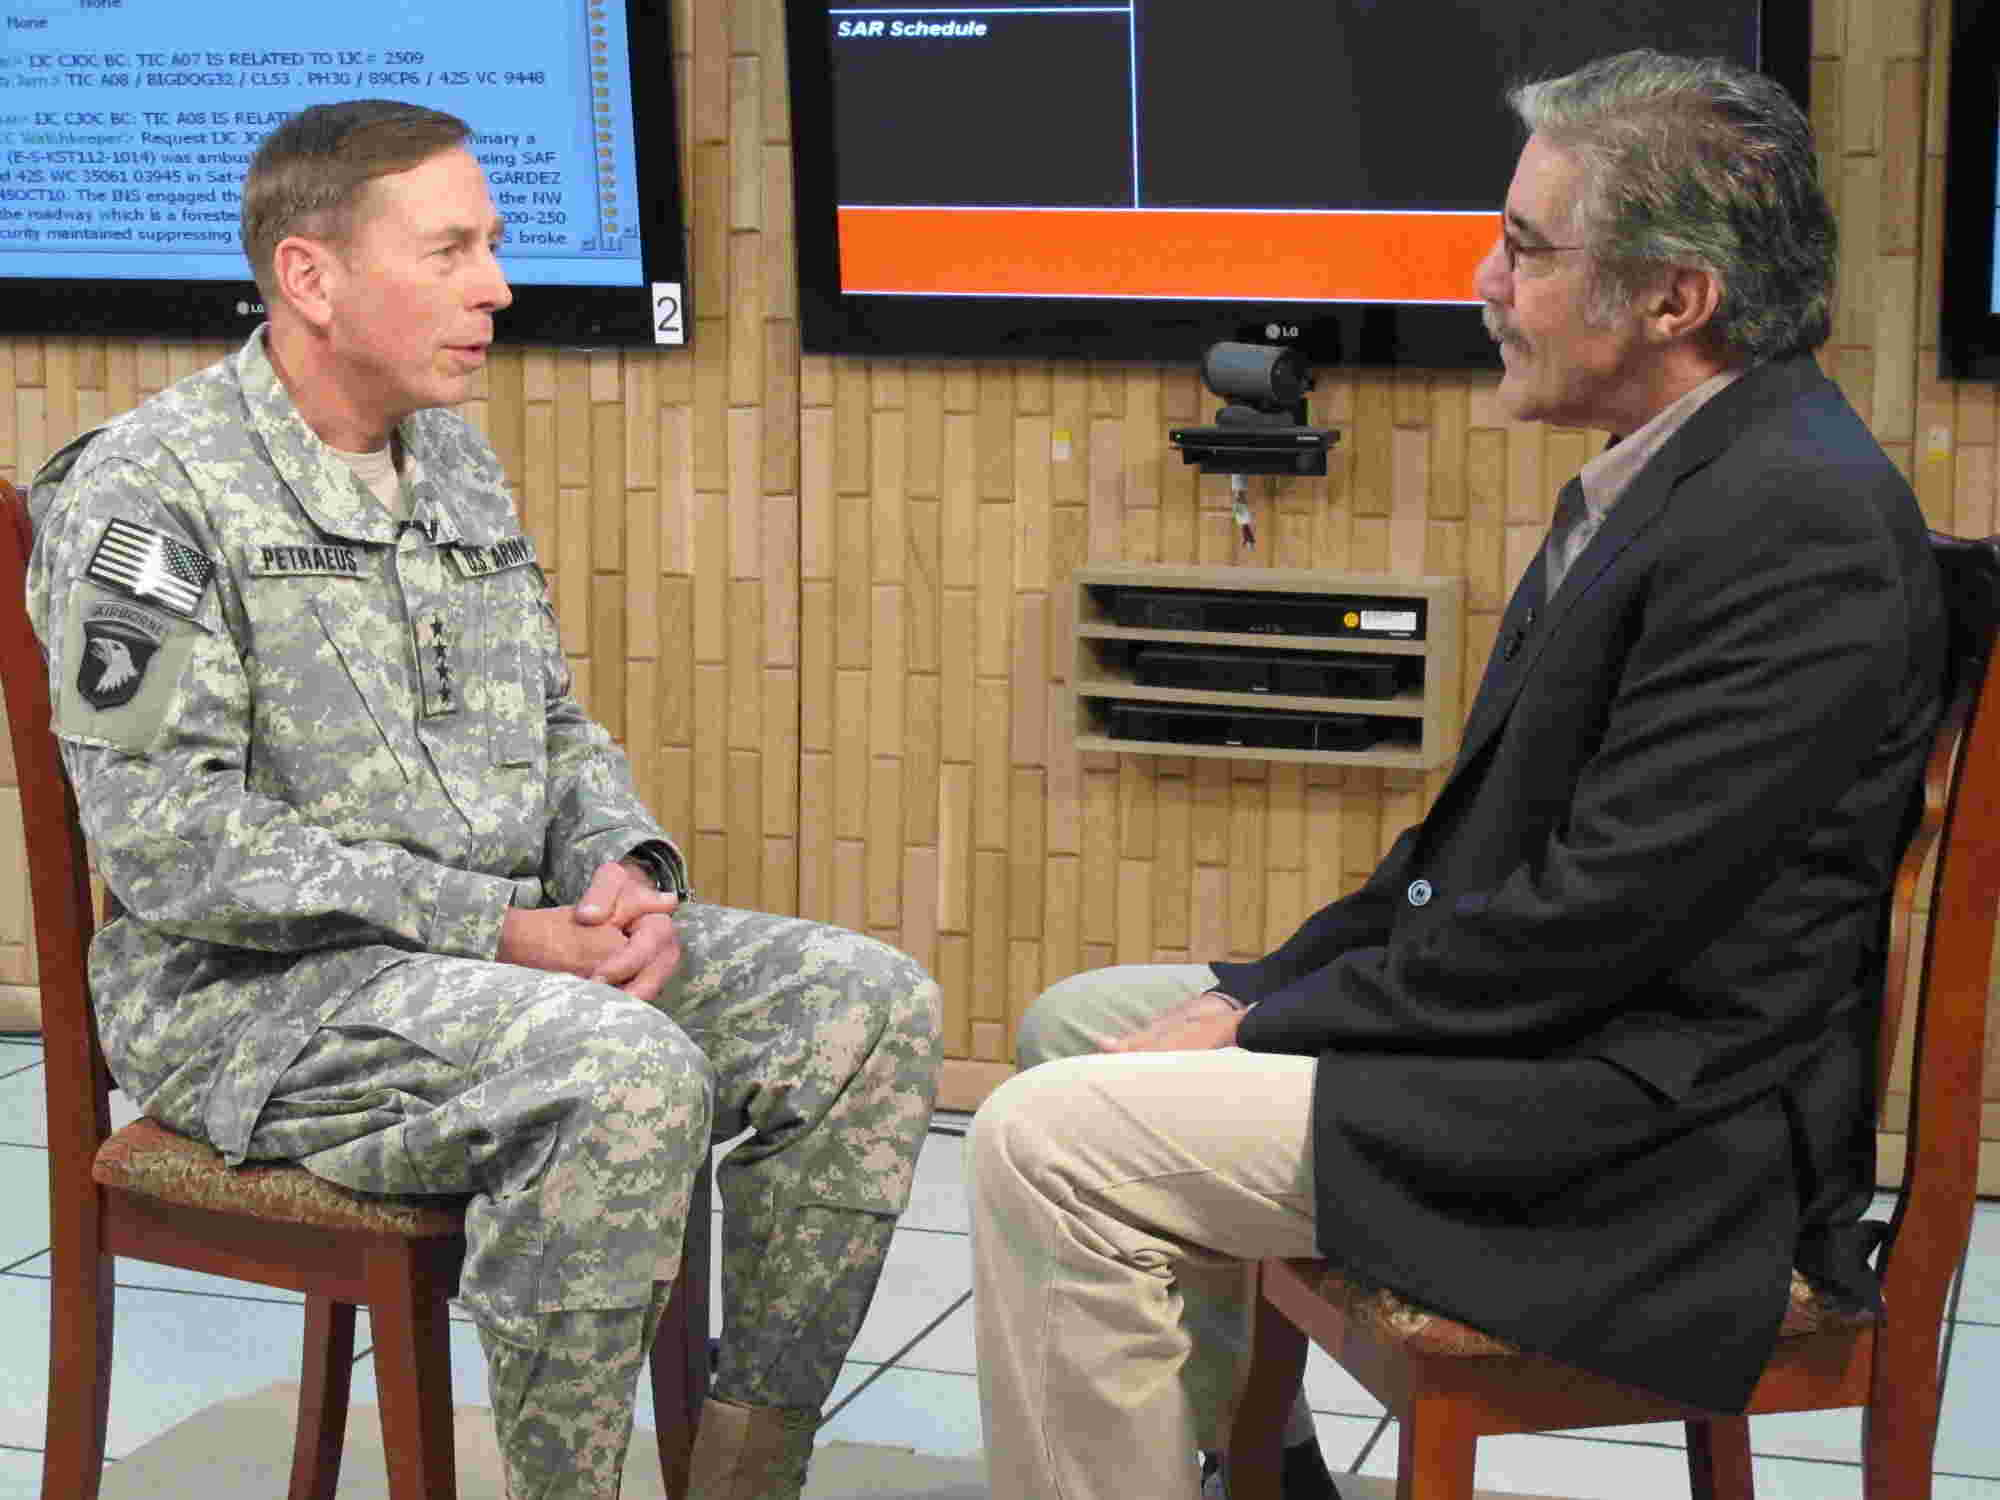 Geraldo questions General David Petraeus in headquarters